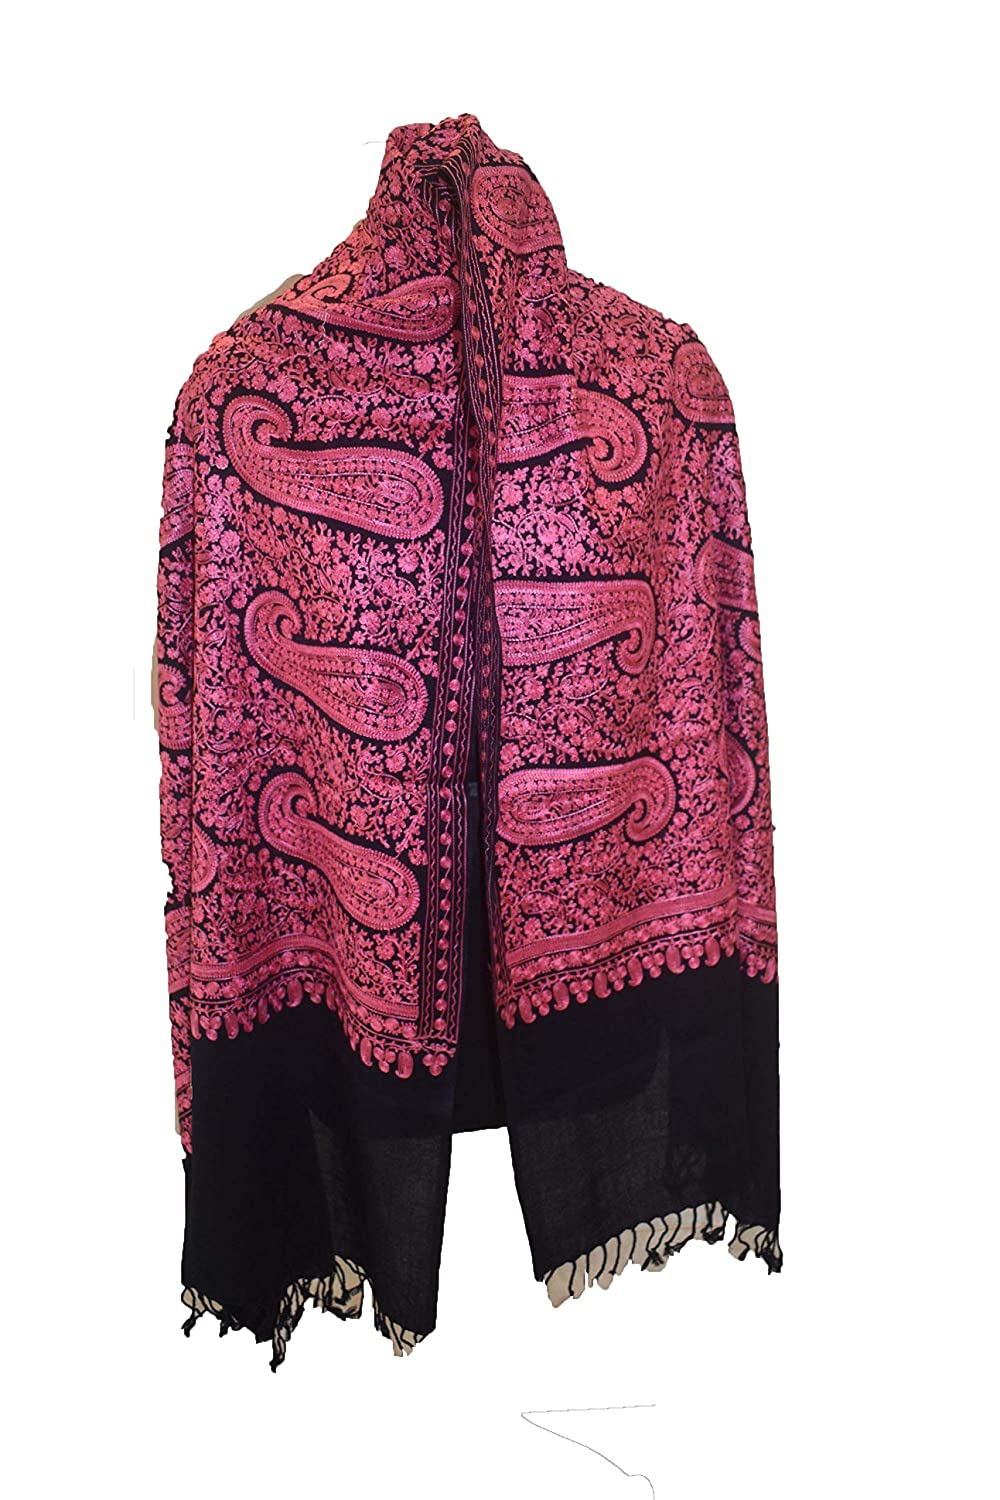 Lavender Pashmina Wool Shawl Crewel Embroidery Kashmir Ari Embroidered Stole Amazon In Home Kitchen